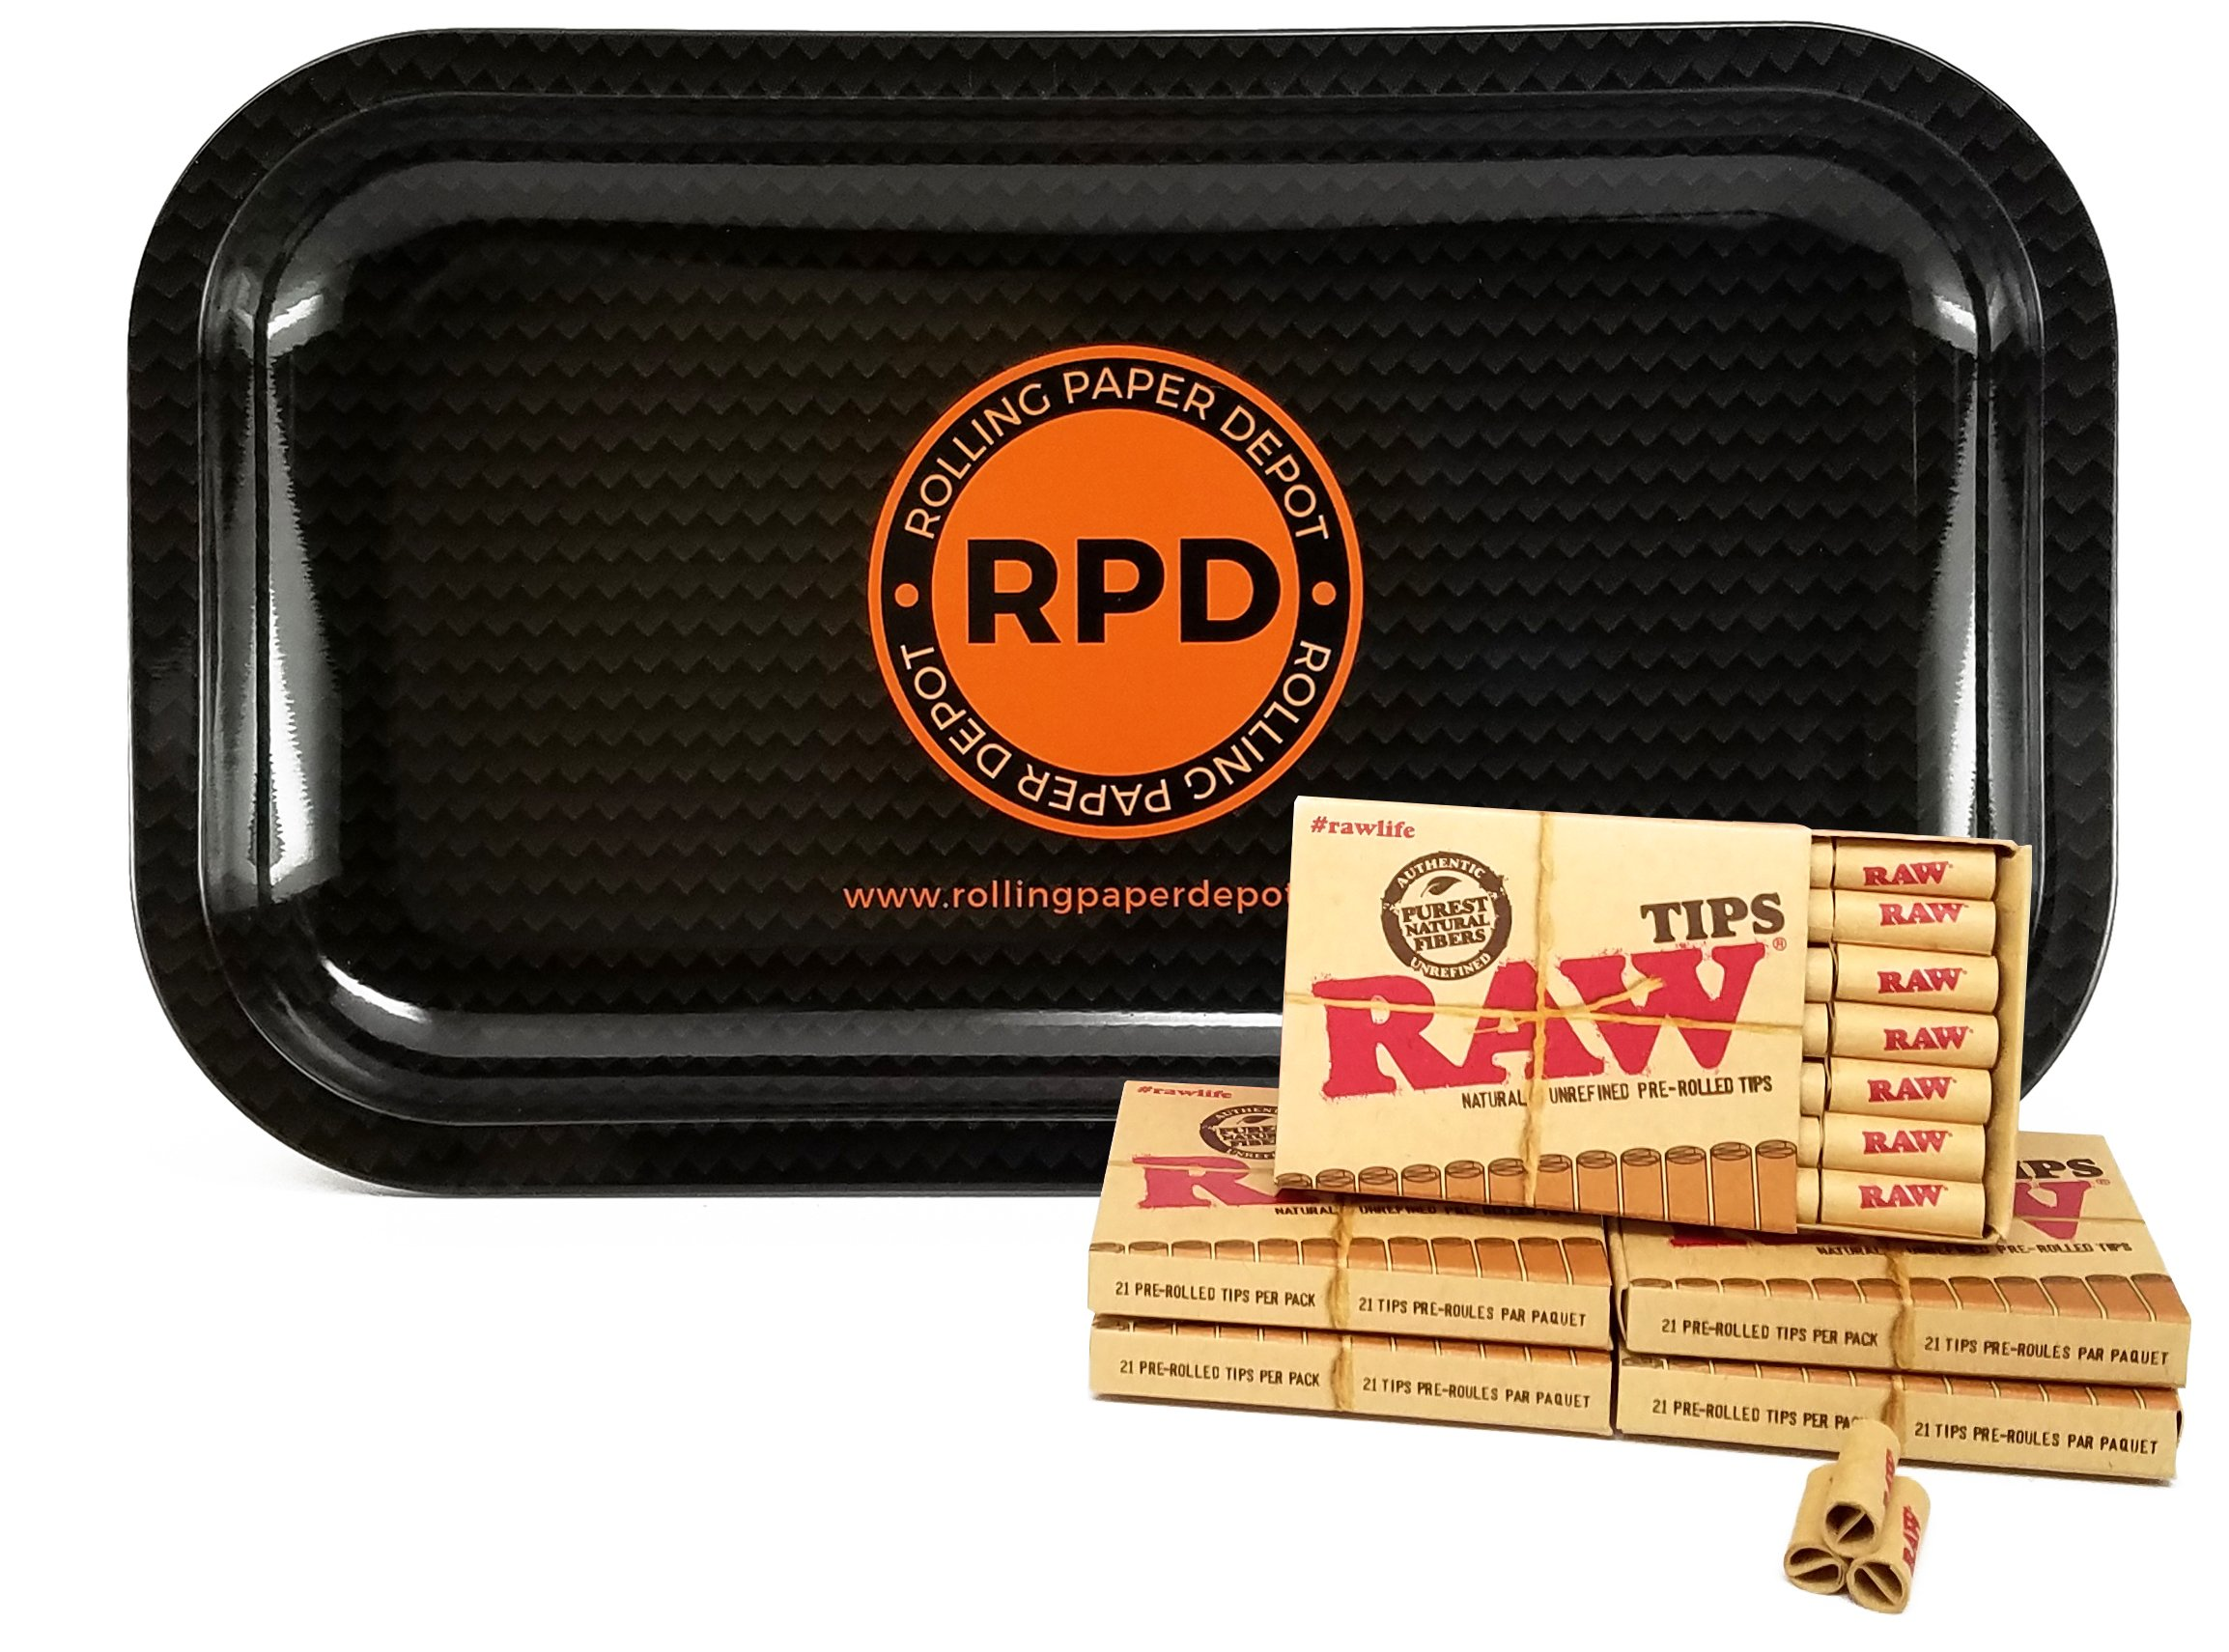 5 Packs RAW Natural Unrefined Pre-Rolled Tips with Rolling Paper Depot Rolling Tray (Carbon)